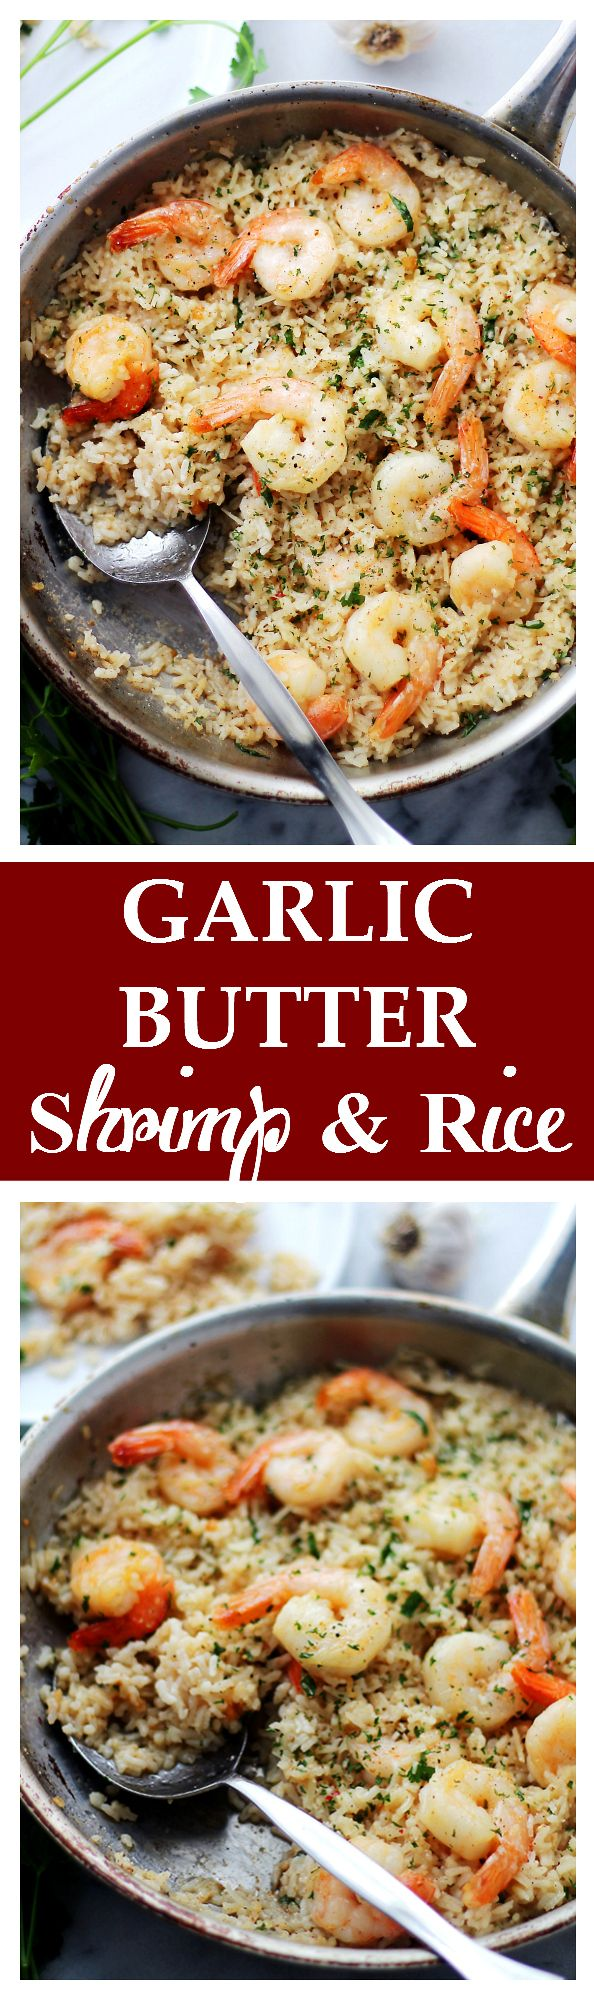 Garlic Butter Shrimp and Rice | www.diethood.com | Garlic Butter lends an amazing flavor to this speedy and incredibly delicious meal with Shrimp and Rice. | #shrimp #rice